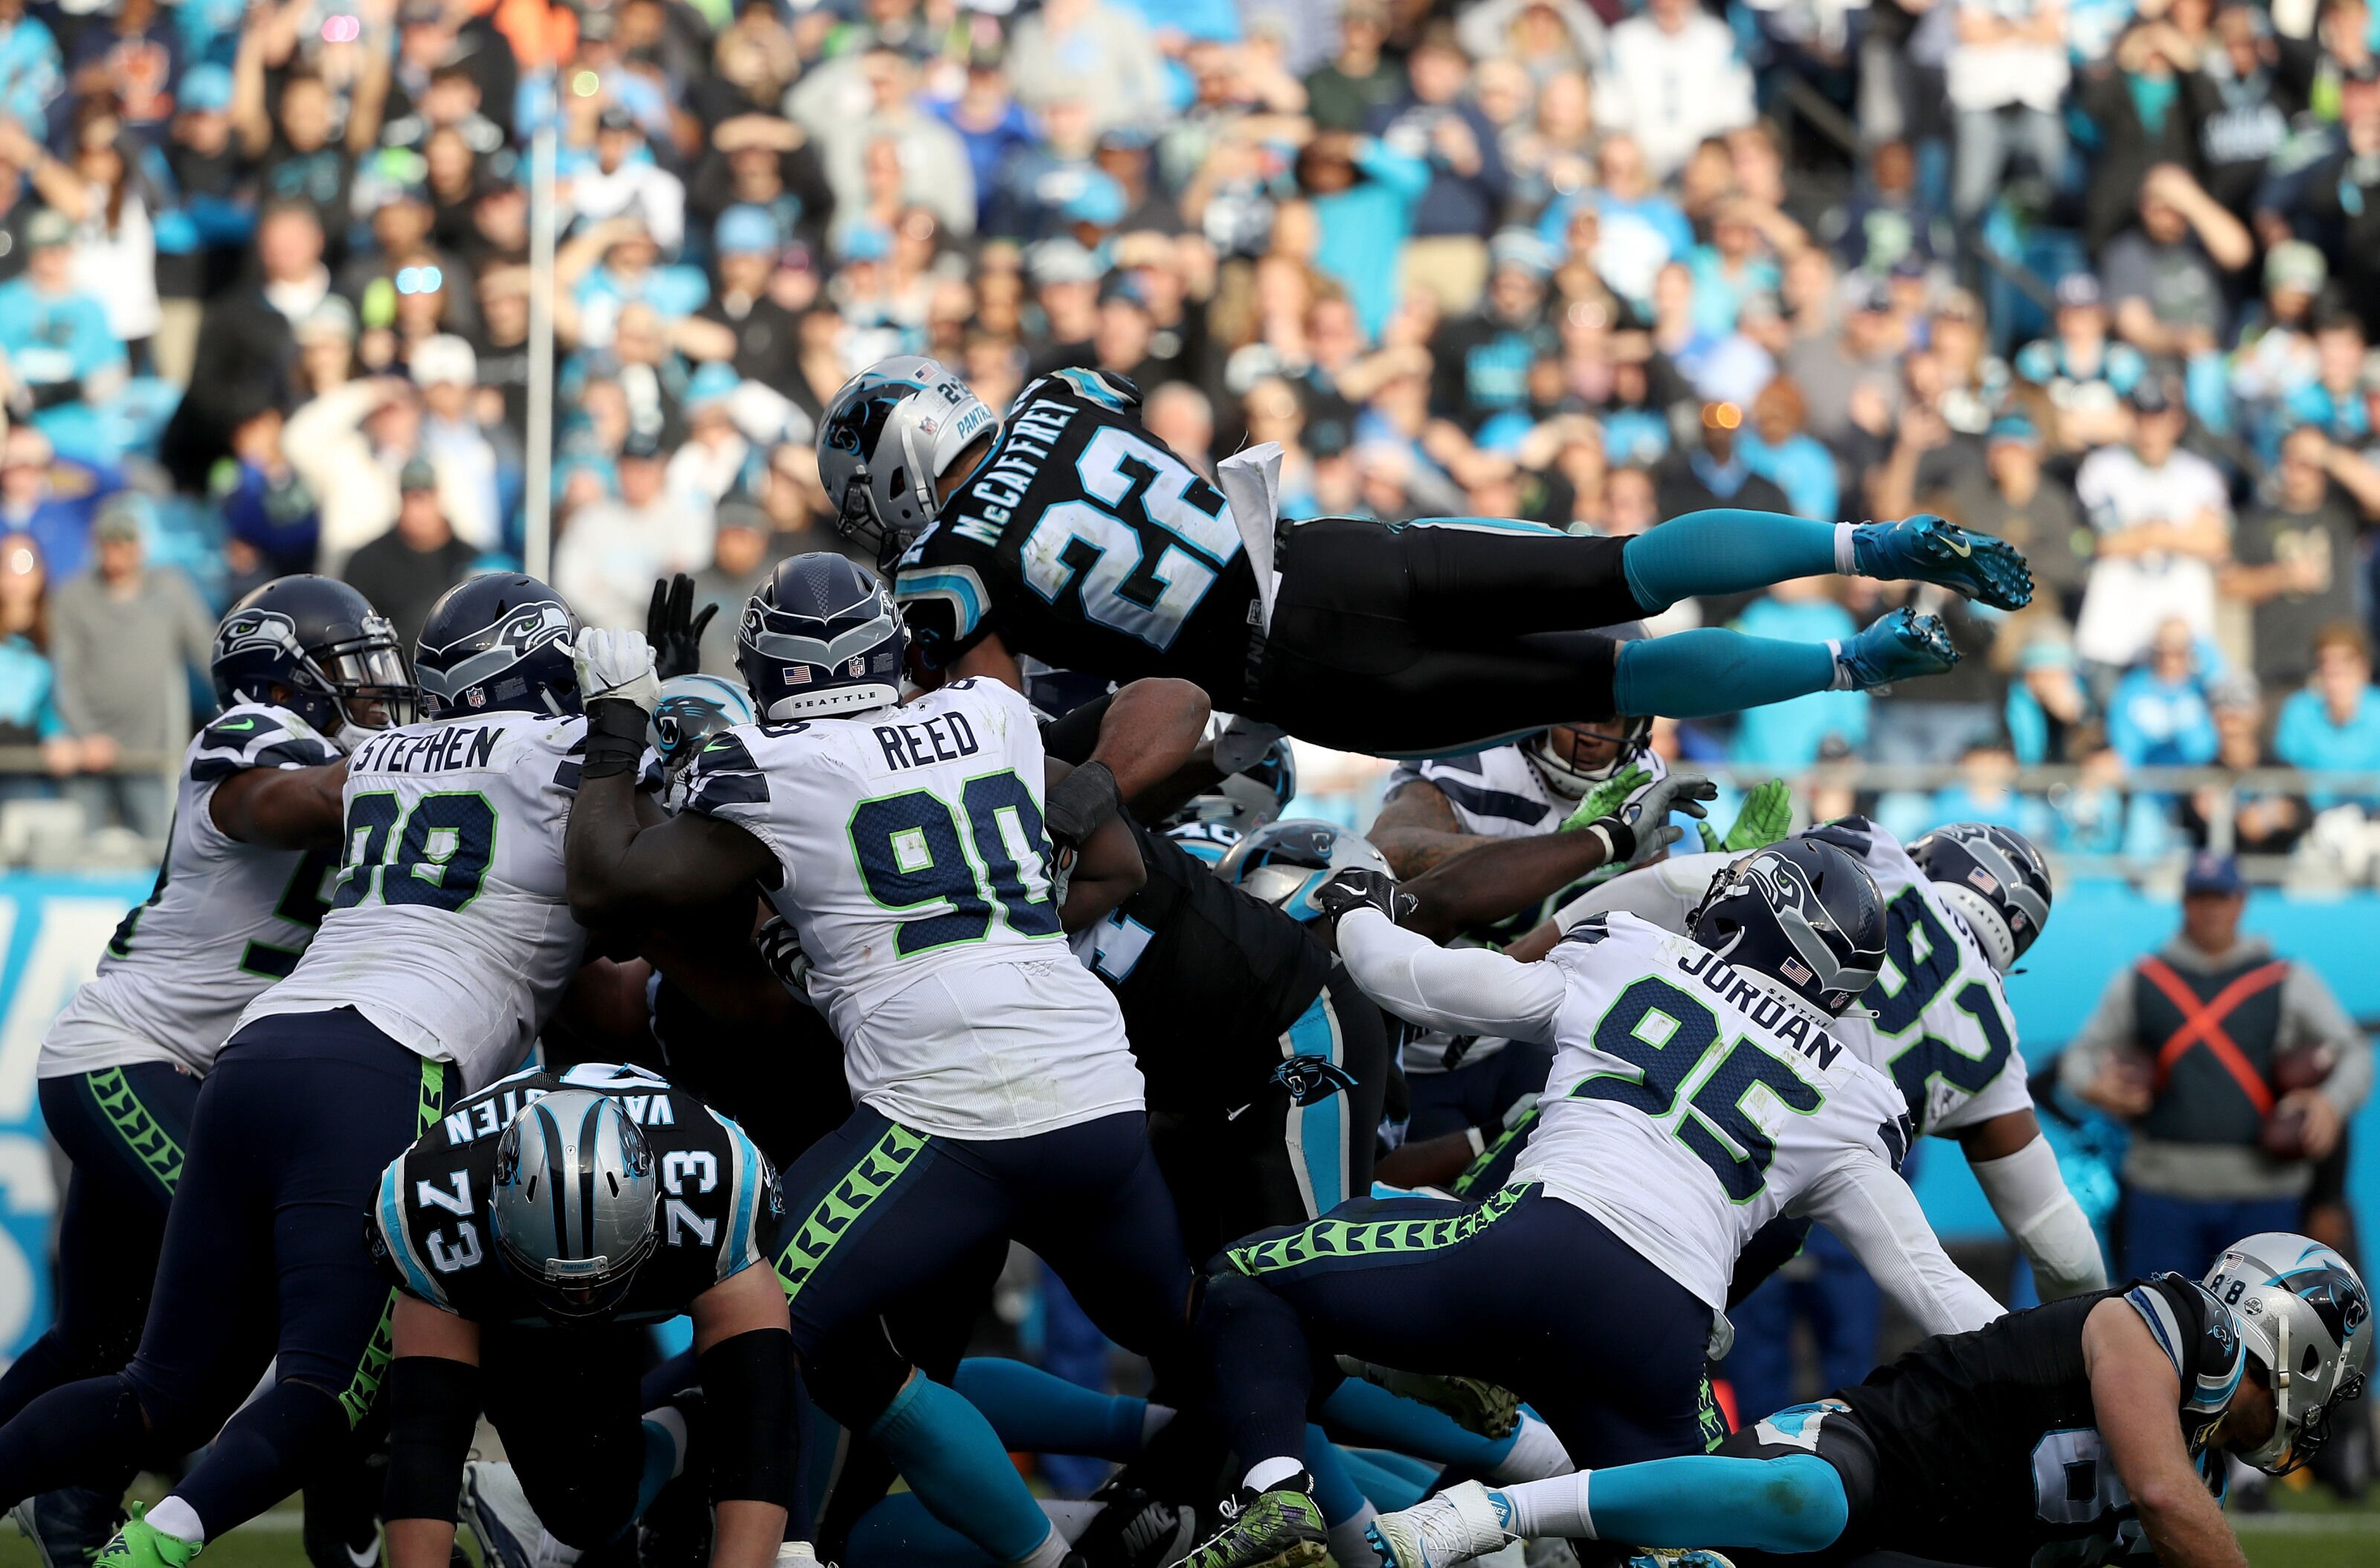 Carolina Panthers Week 15 preview vs. Seattle Seahawks